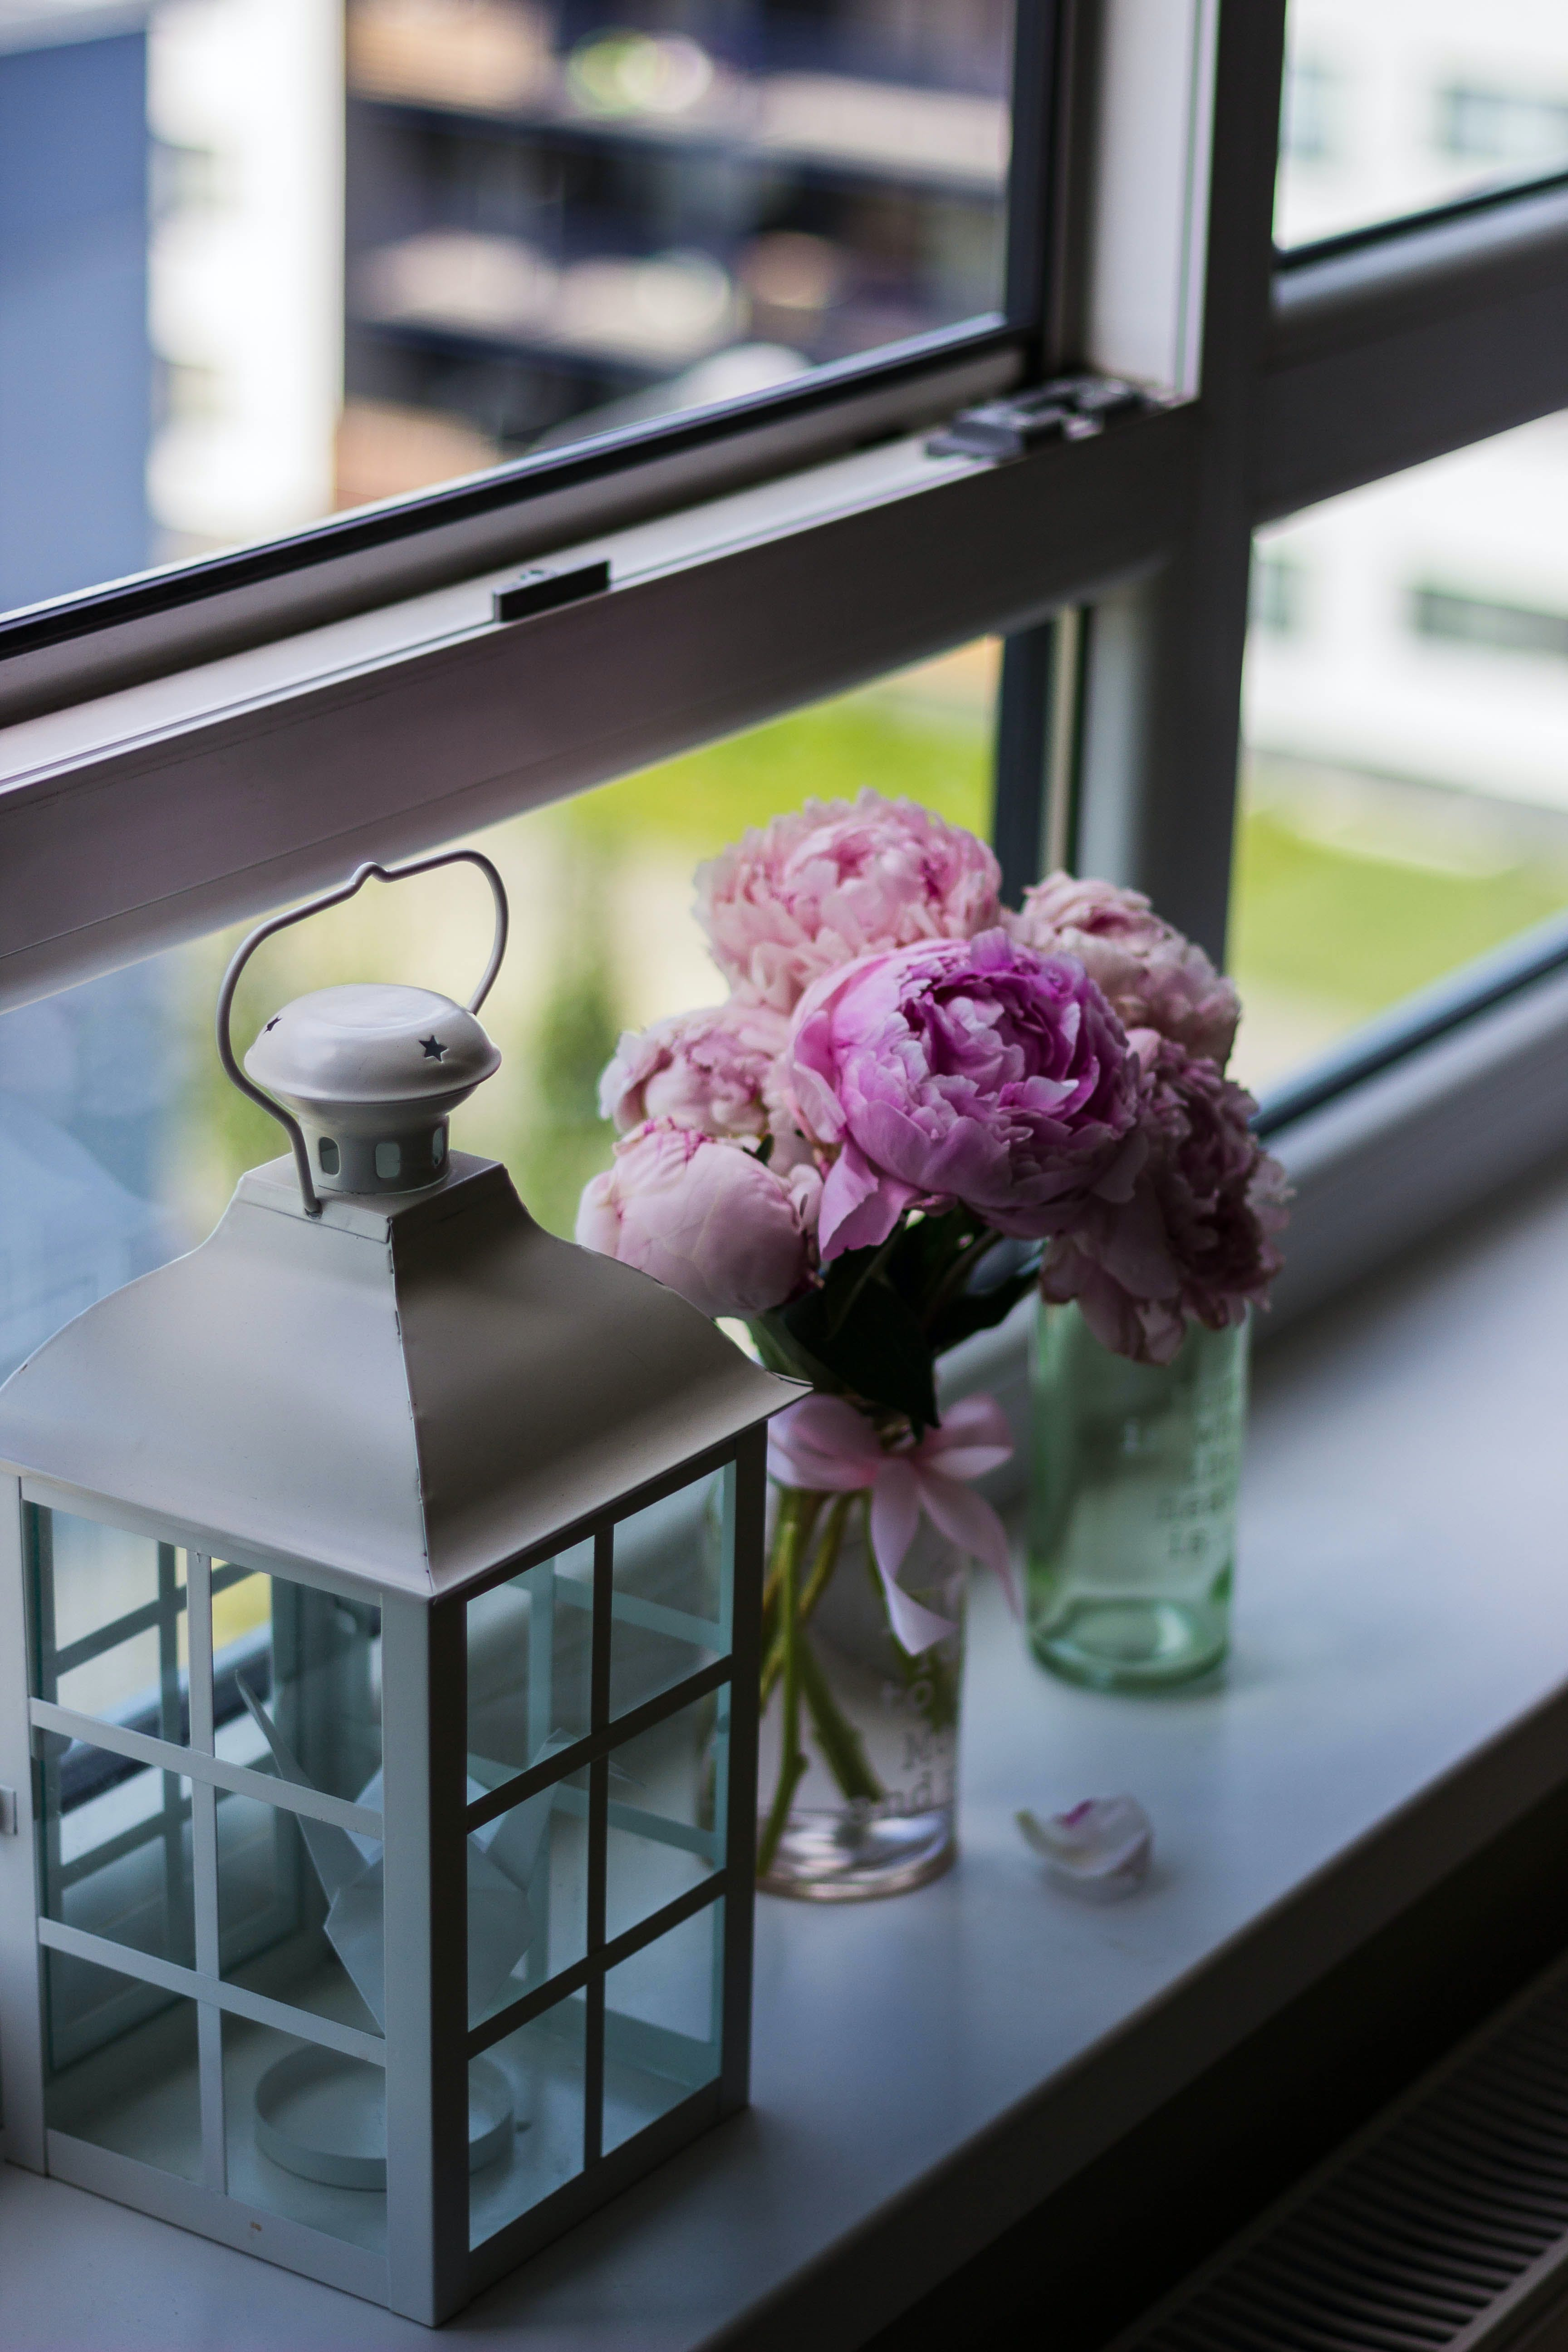 Candle Lantern Near Purple Petaled Flower on Glass Window